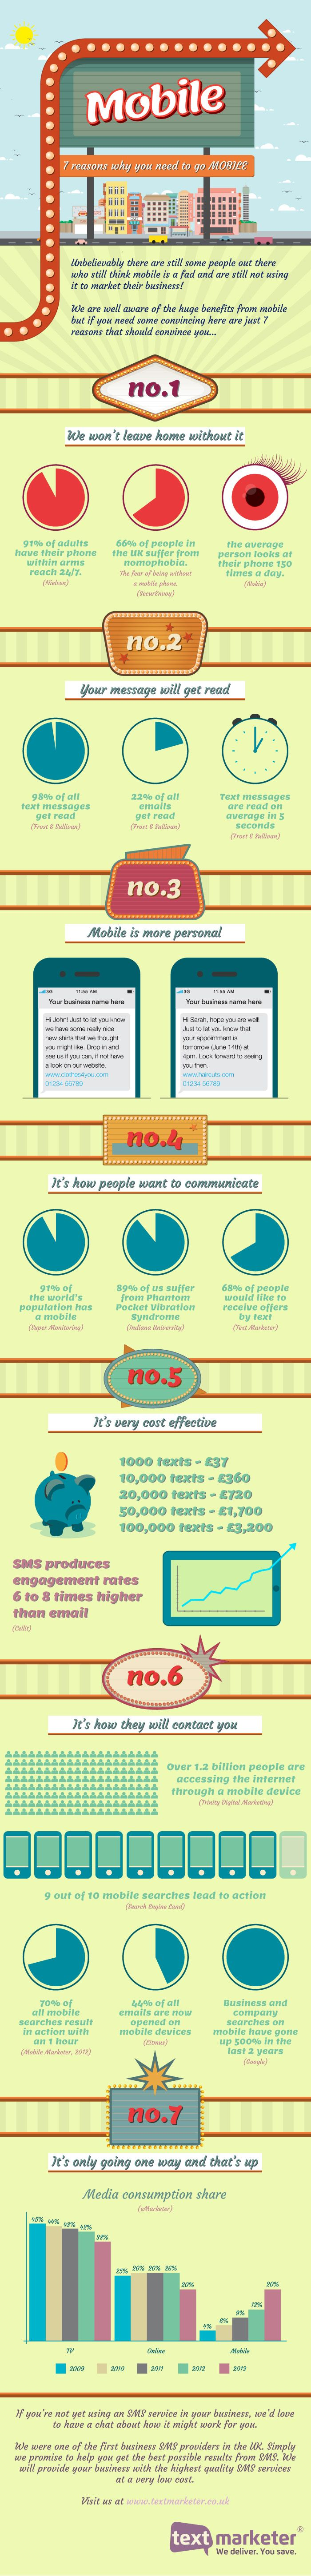 Mobile Marketing - #infographic, #SMS